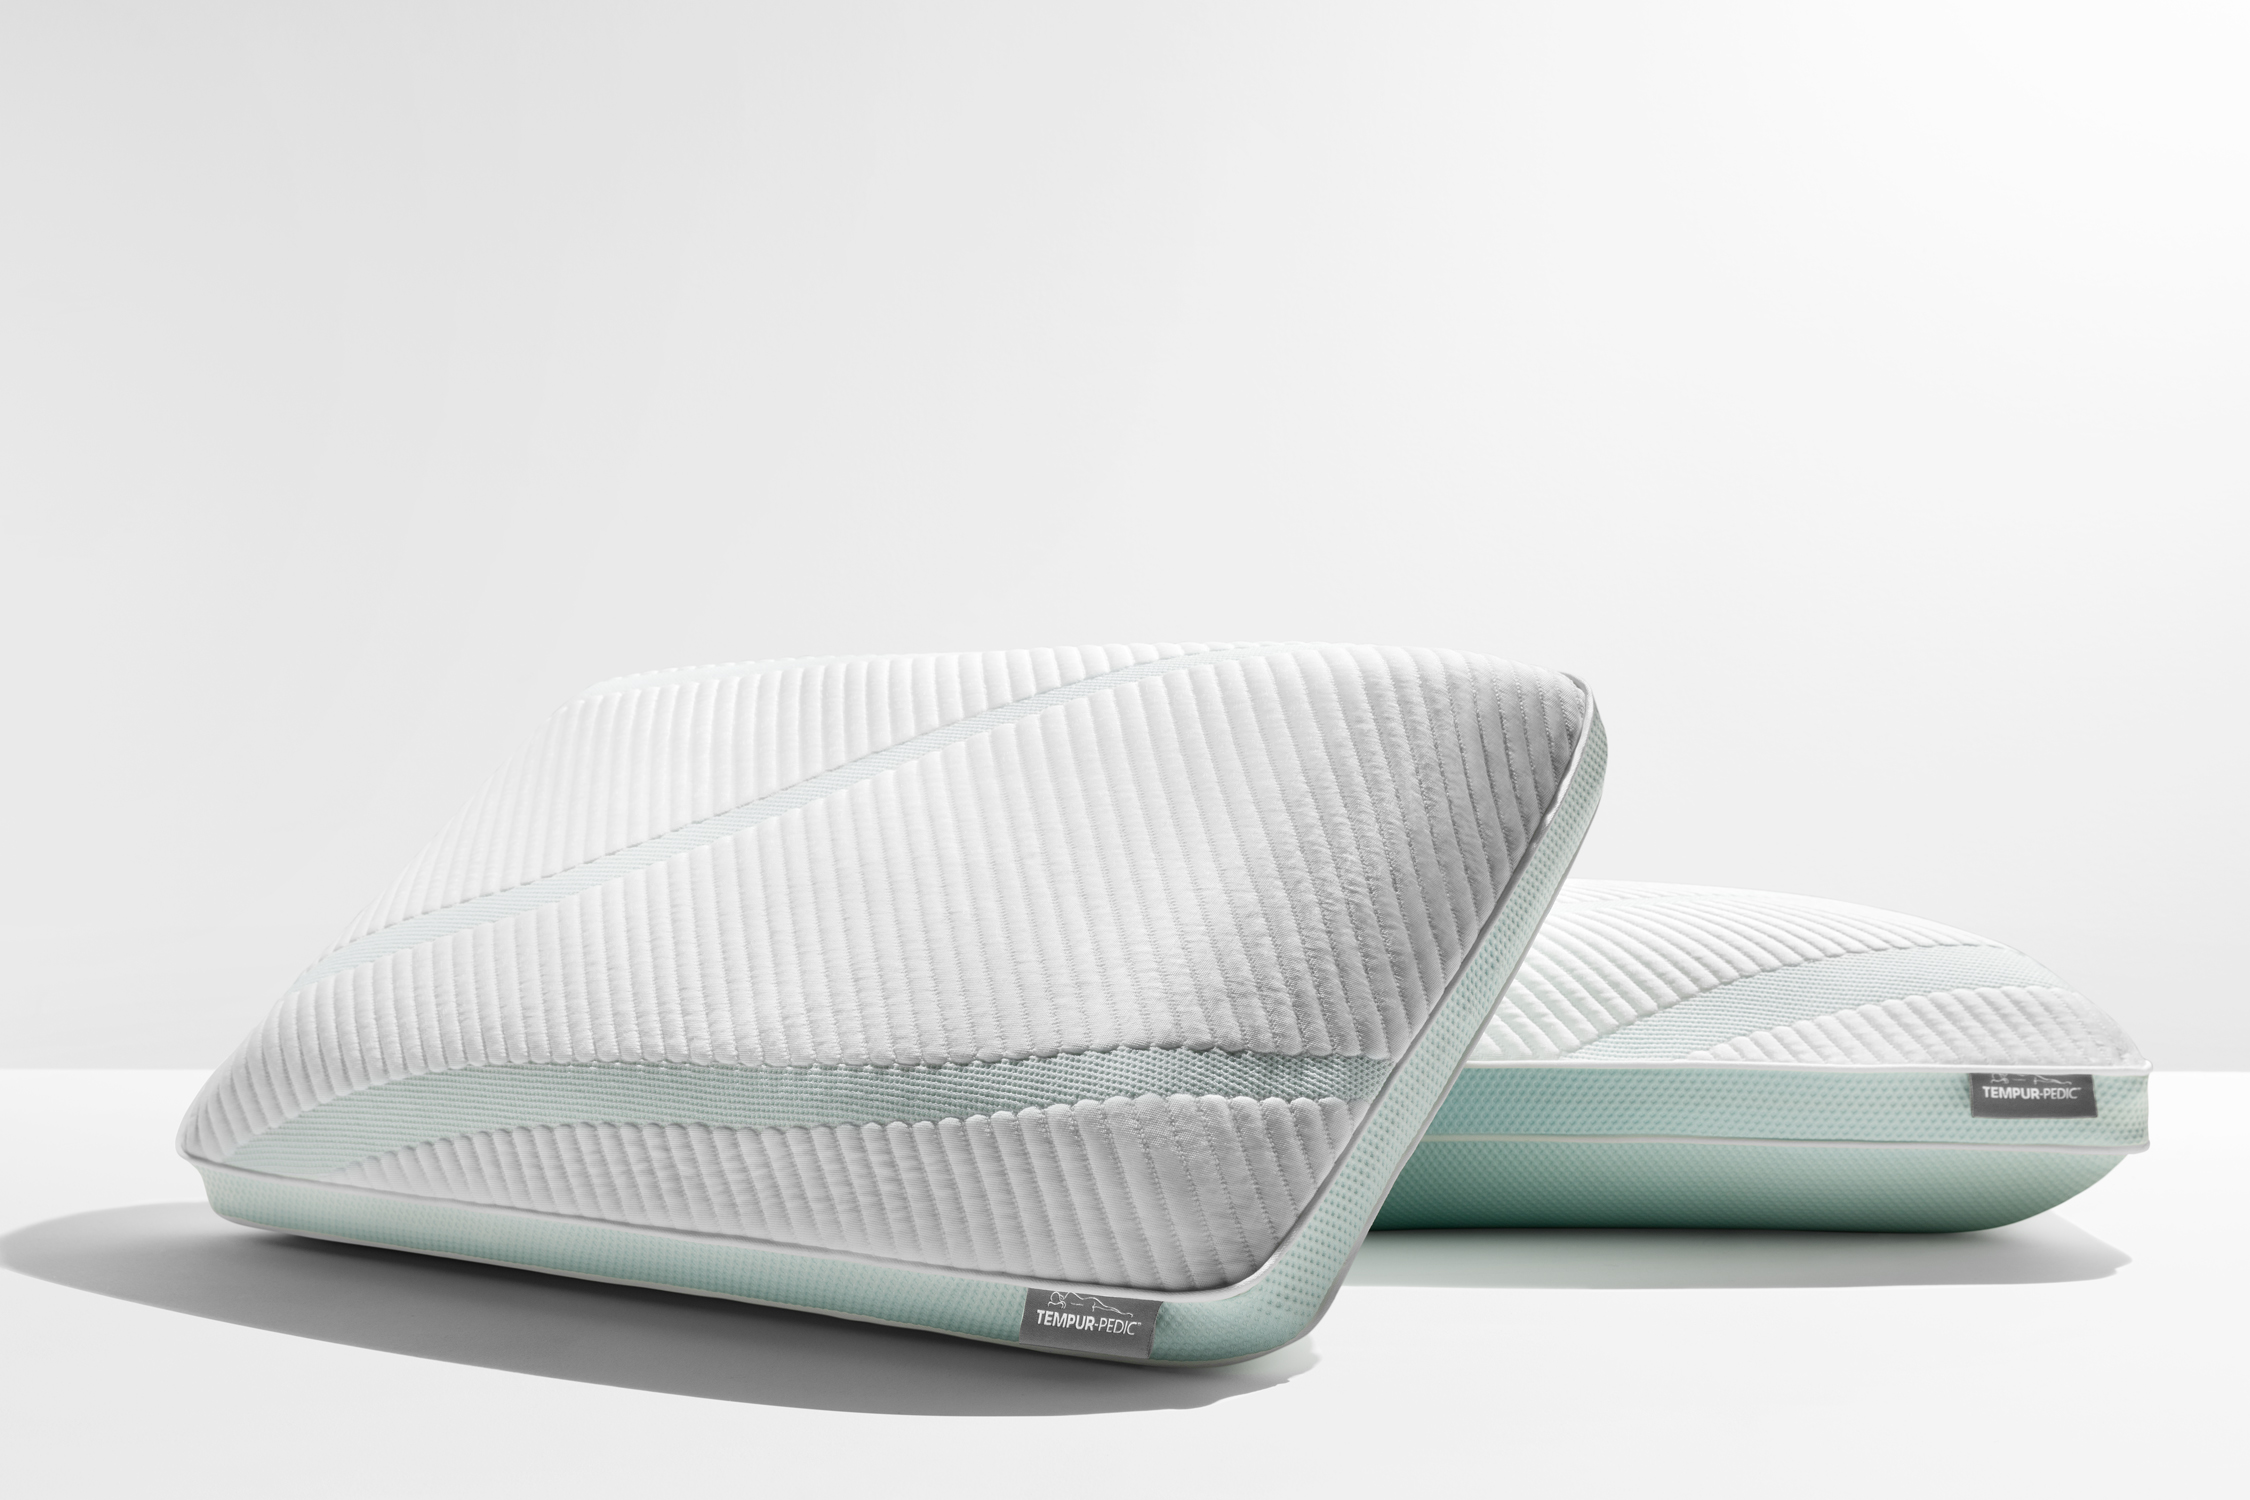 tempur adapt prohi cooling pillow by tempur pedic the back store sleep well we ve got your back